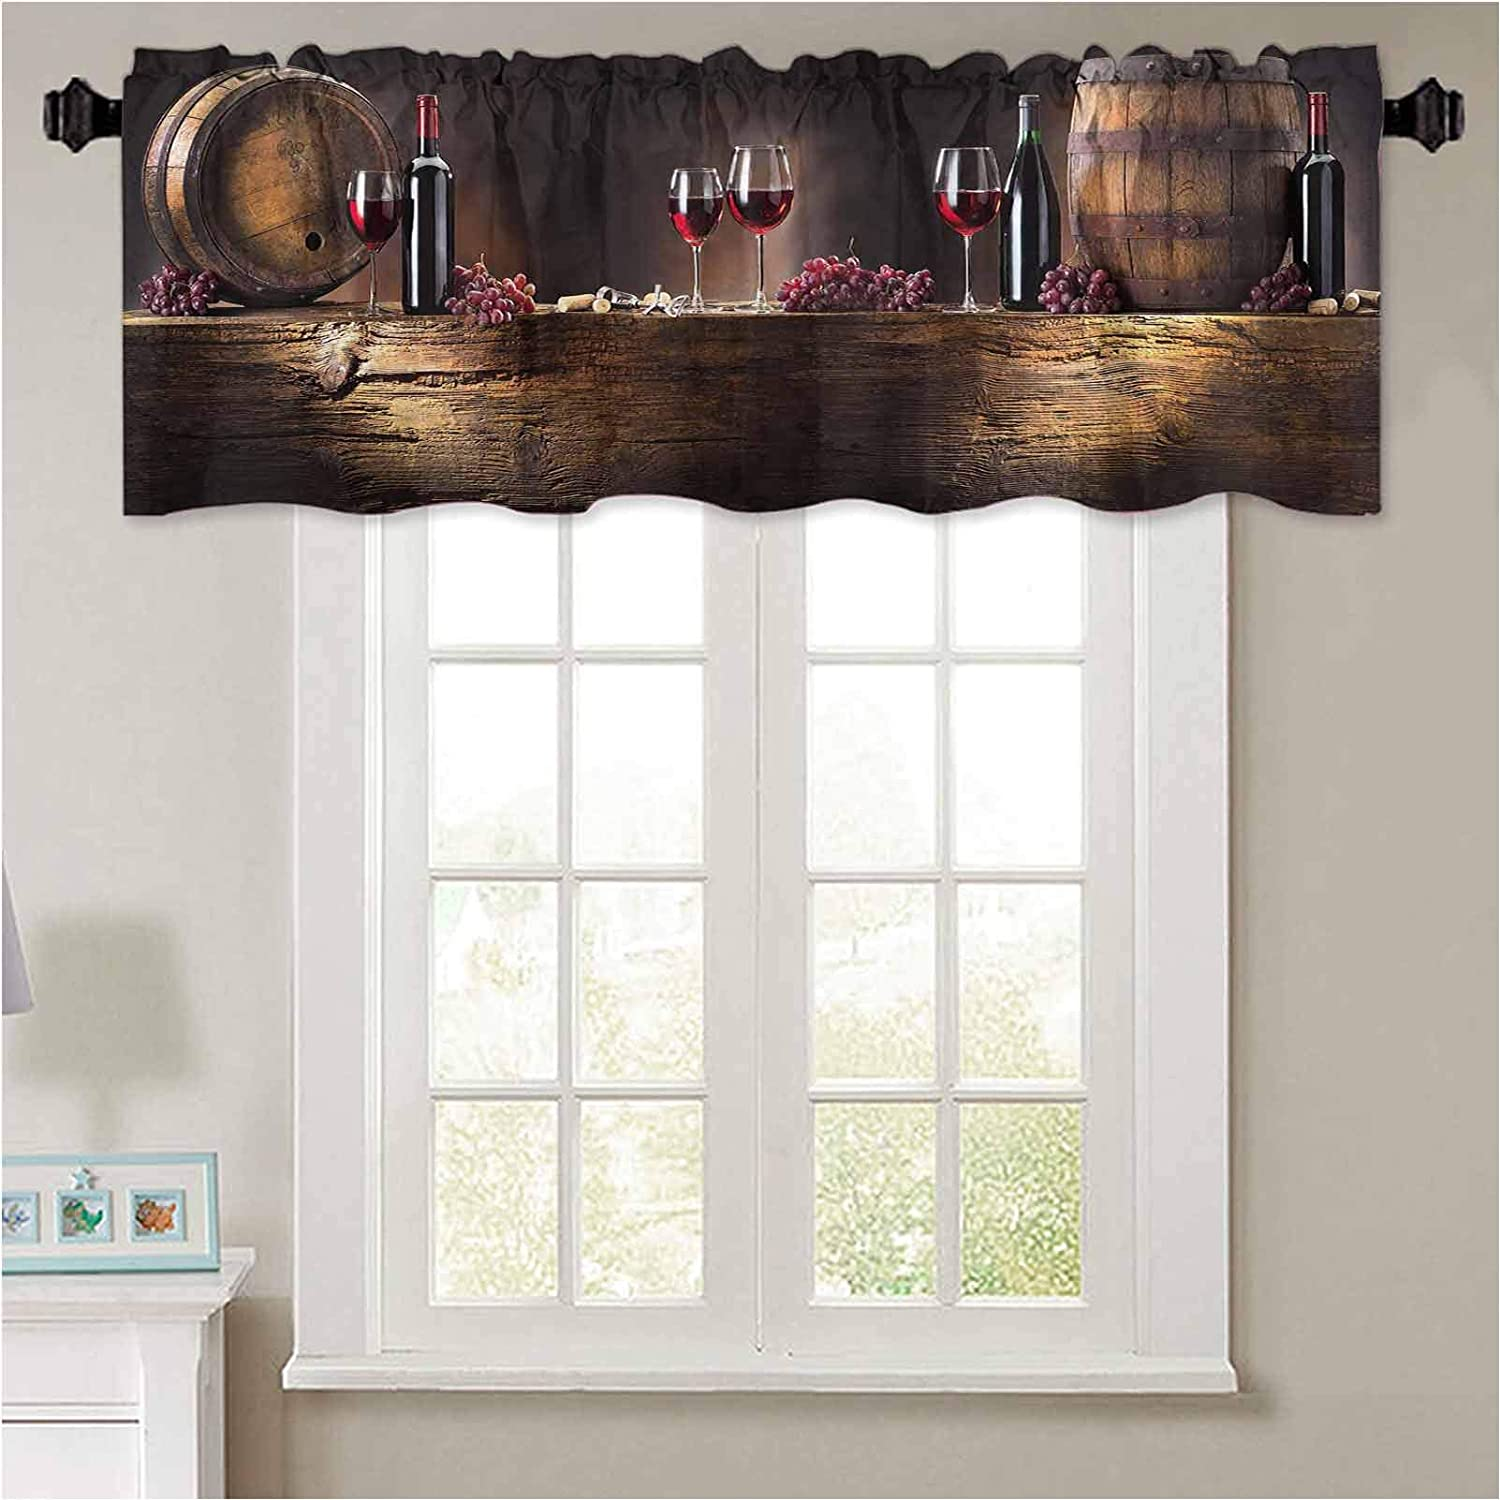 """YUAZHOQI Kitchen Curtain Valance Winery Decor Red Wine Barrels Bottles Glasses Grapes on a Anti 1 Panel 36"""" x 18"""" Thermal Insulated Blackout Valance Curtain"""